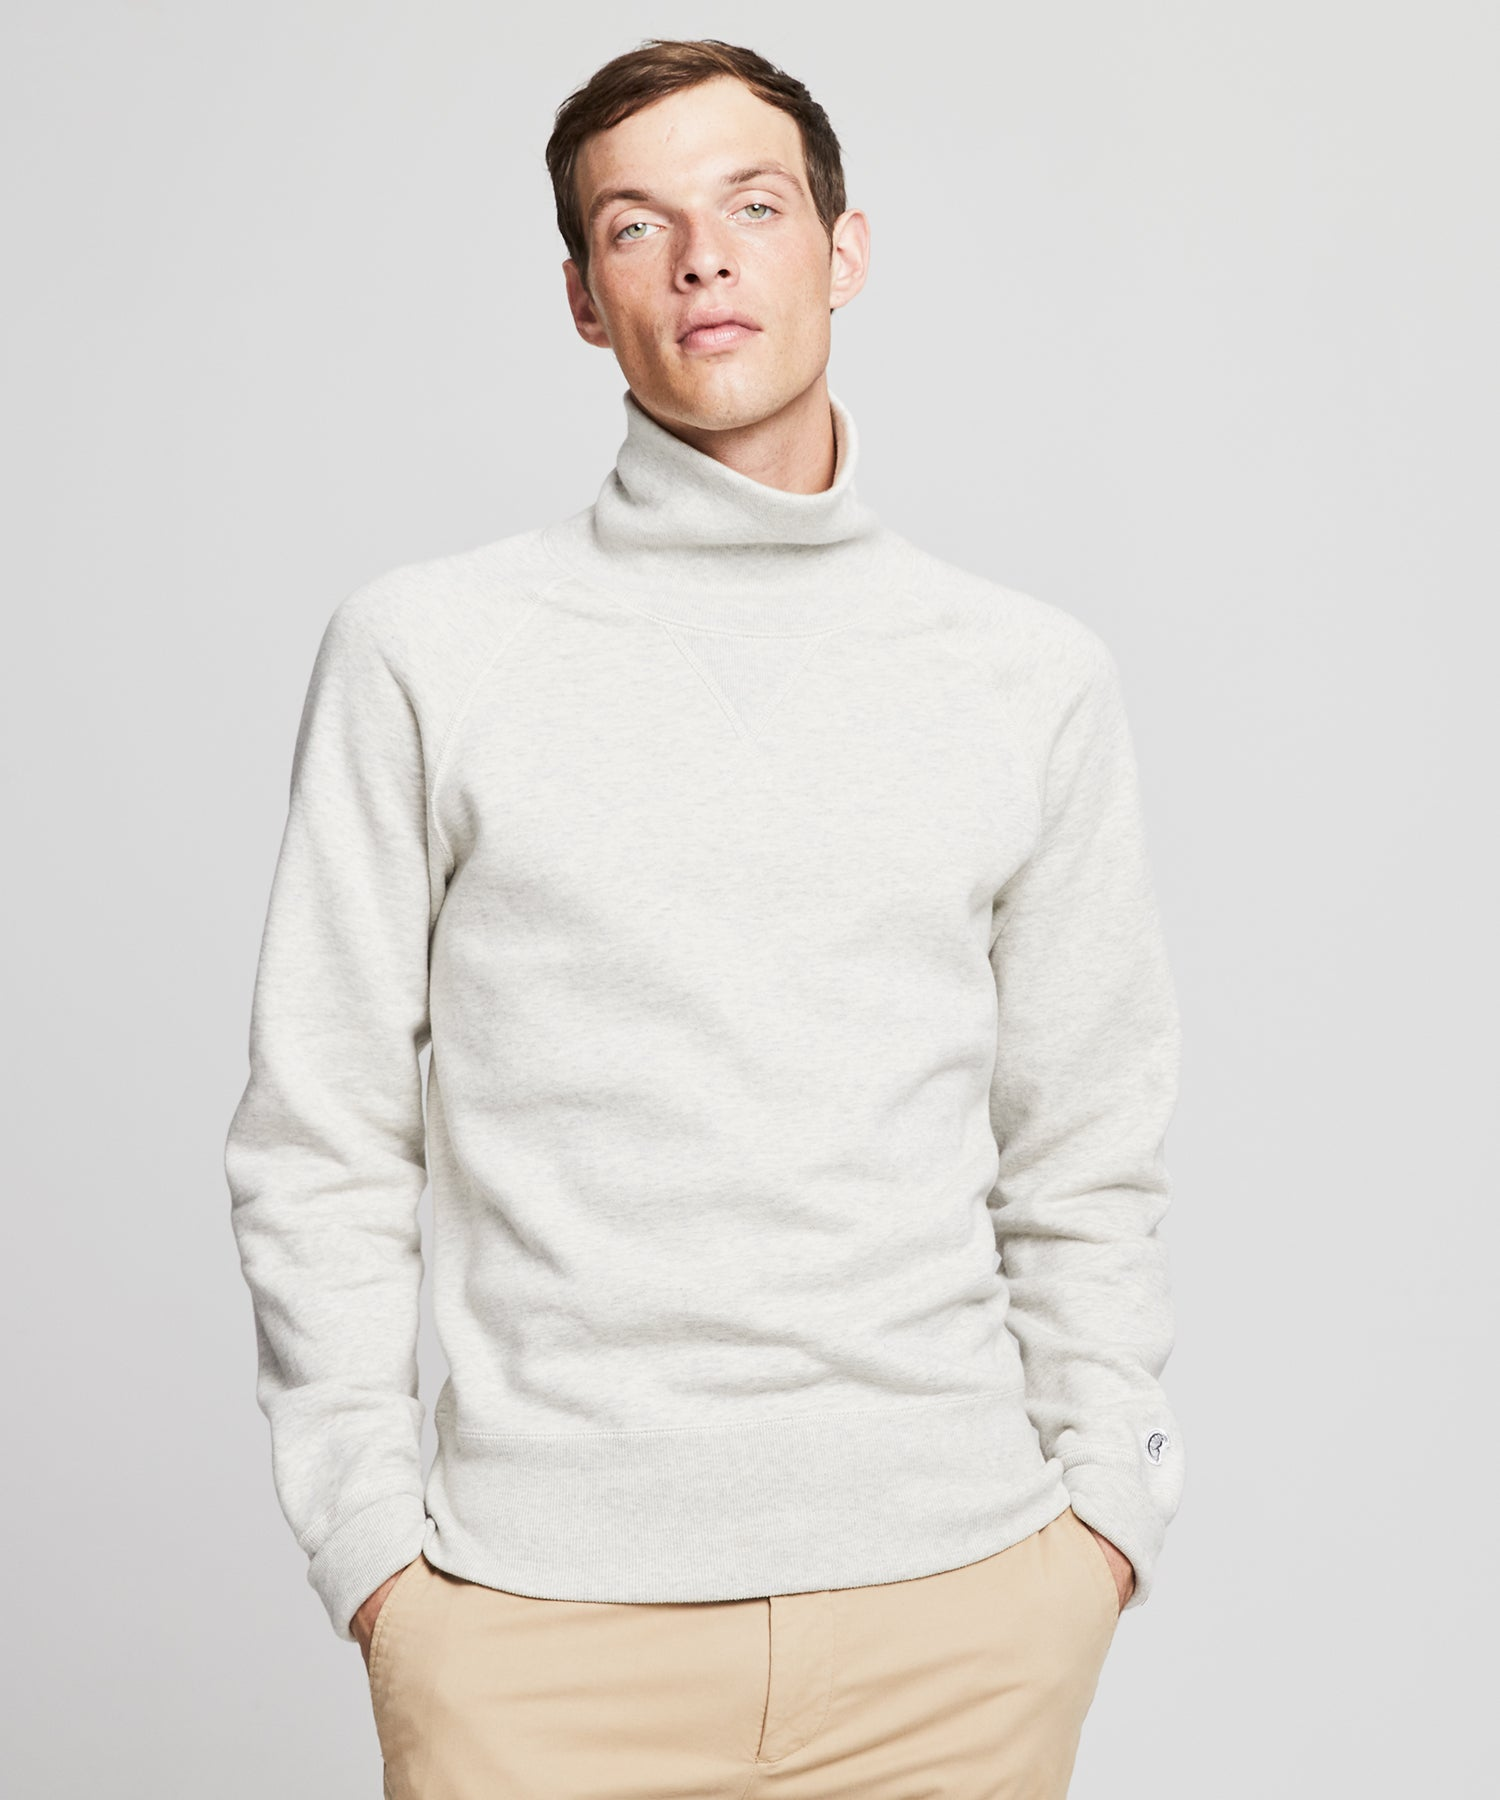 Fleece Turtleneck Sweatshirt in Eggshell Mix